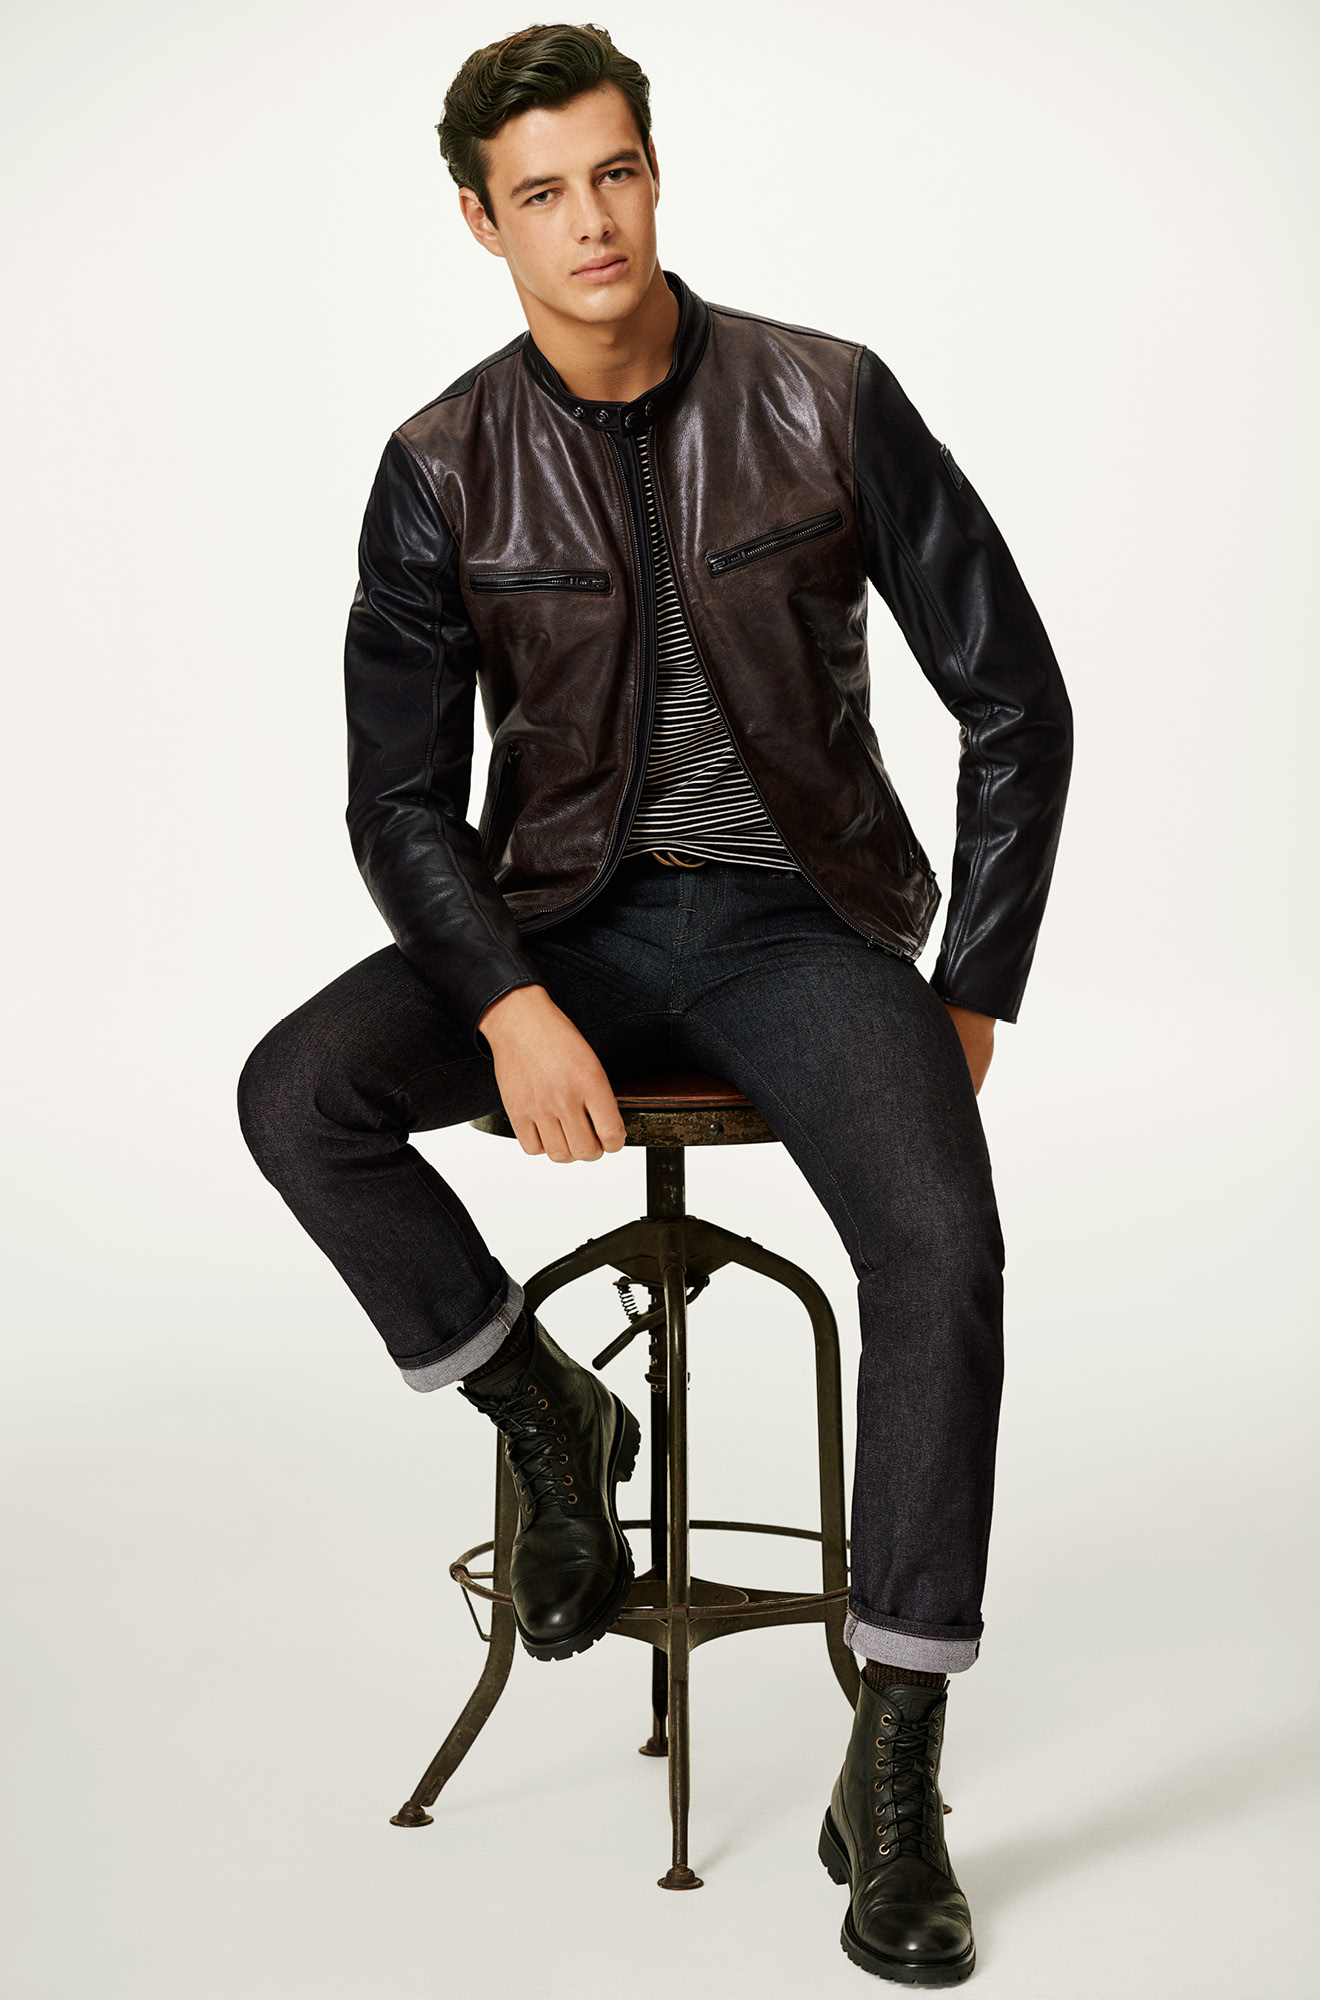 Belstaff 19/20 collection